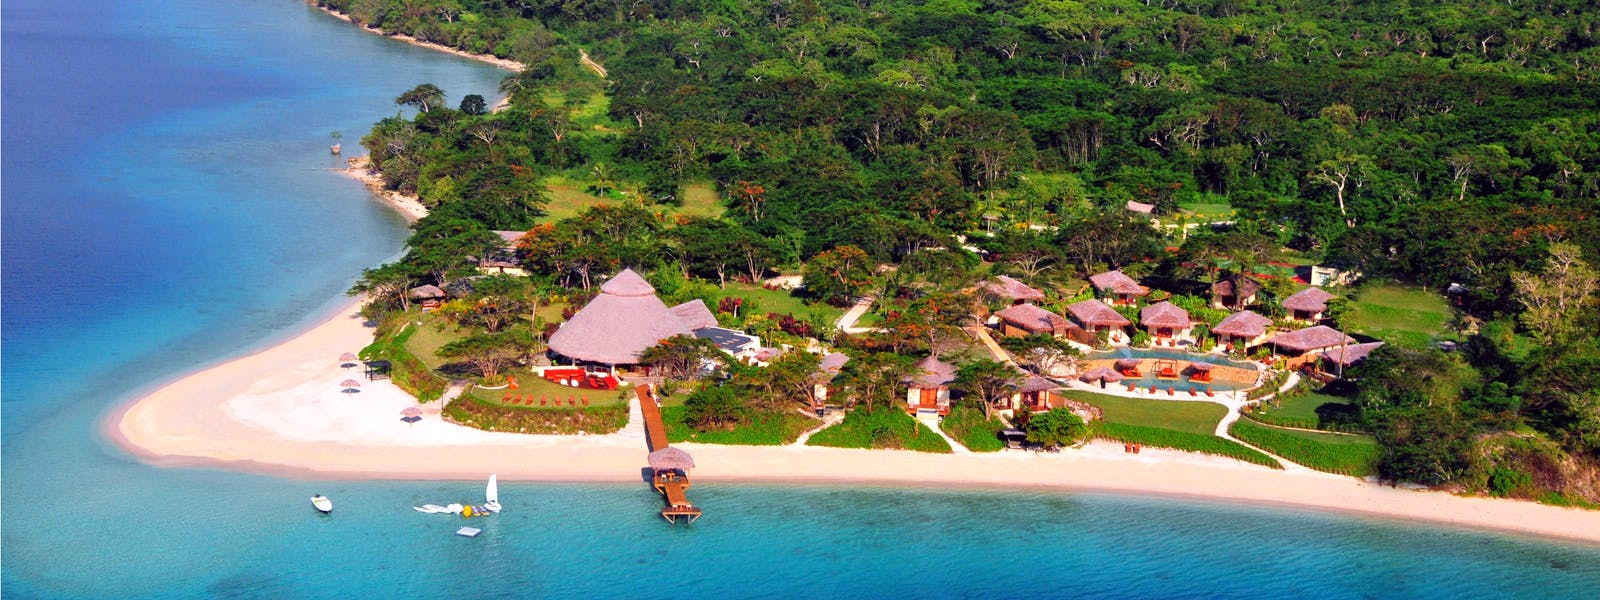 The Havannah, Vanuatu. Award winning Luxury resort  for couples,  romance, weddings and Honeymoon.  natural surroundings